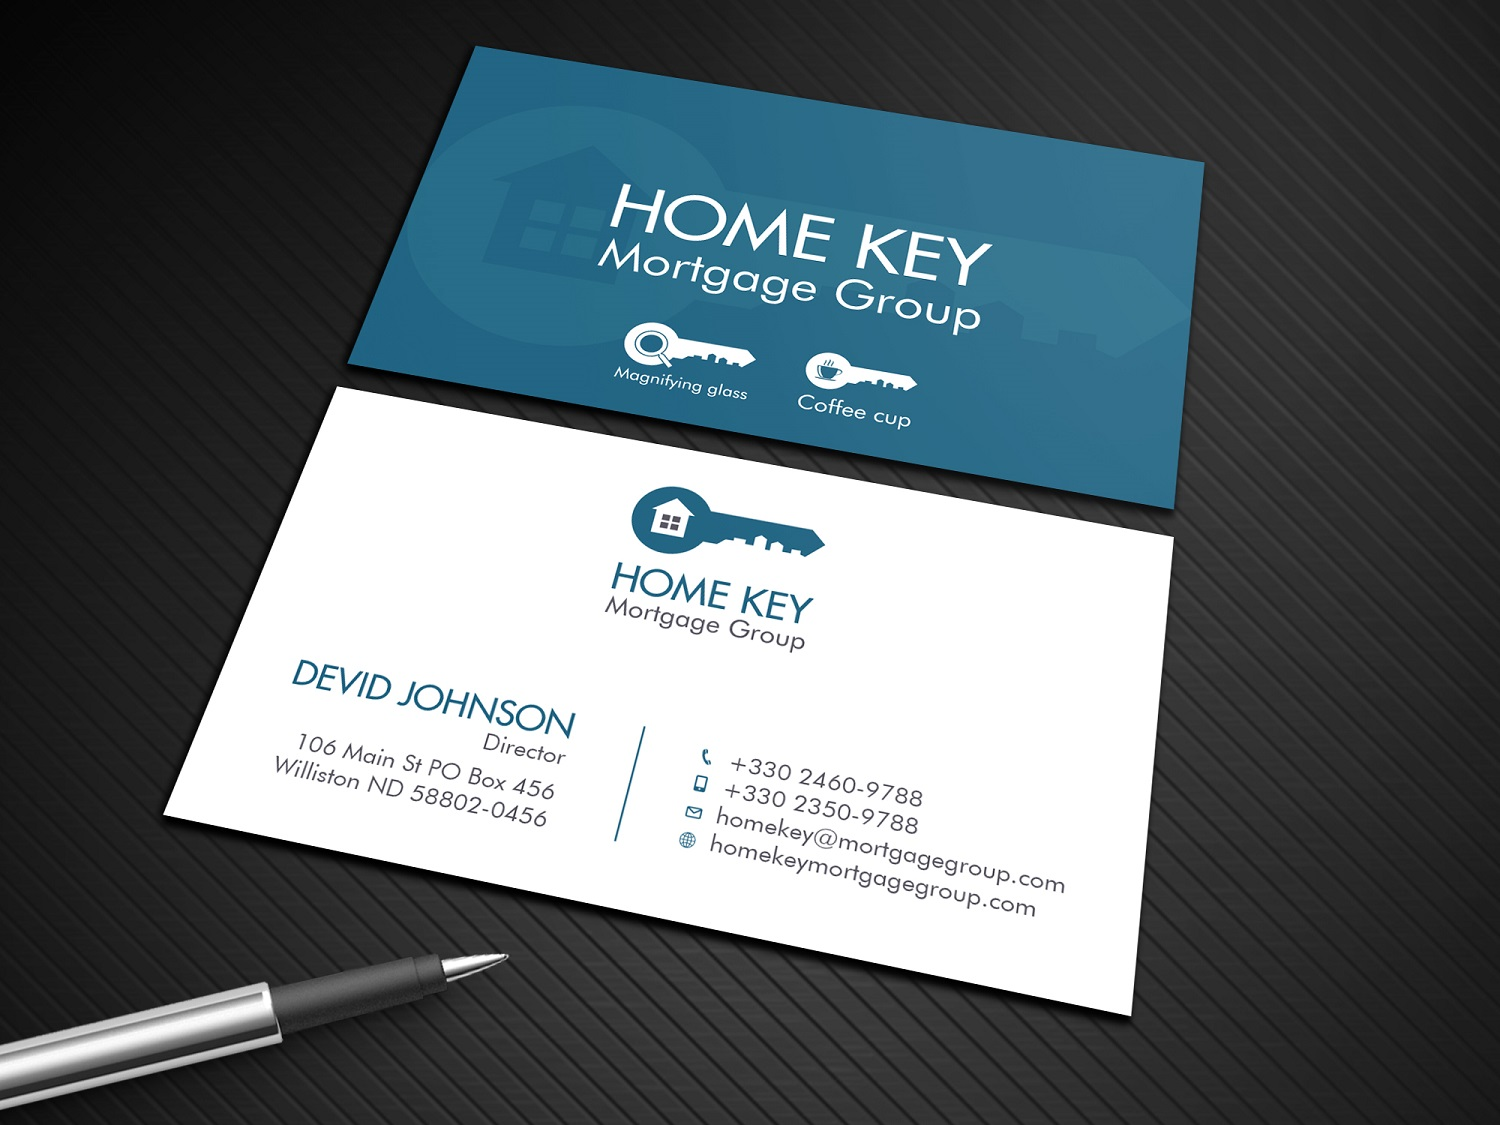 It company business card design for home key mortgage group by business card design by designcrowd for home key mortgage group design 15258292 colourmoves